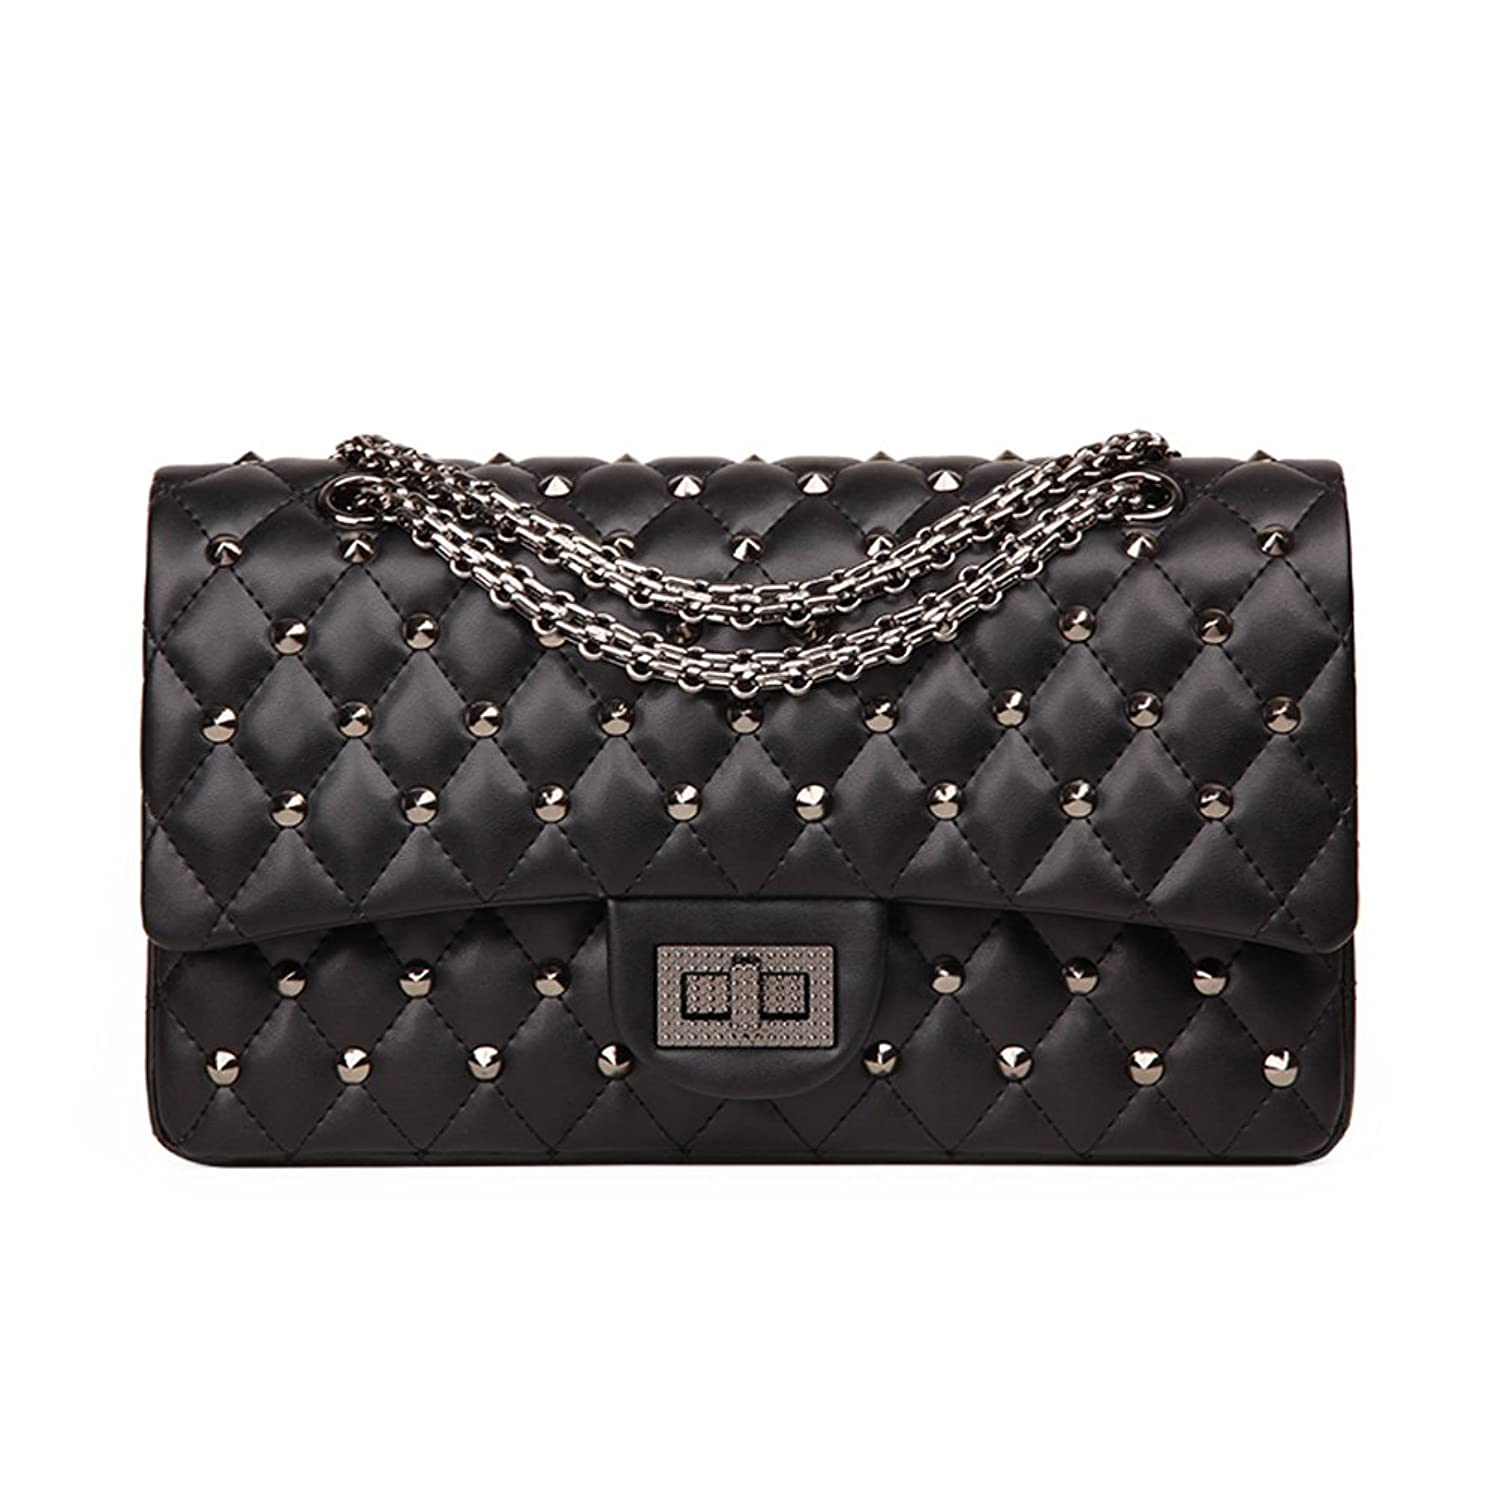 274c09139a4 85%OFF Ainifeel Women s Quilted Studded Genuine Leather Shoulder Bag With  Chain Strap Hobo Bag